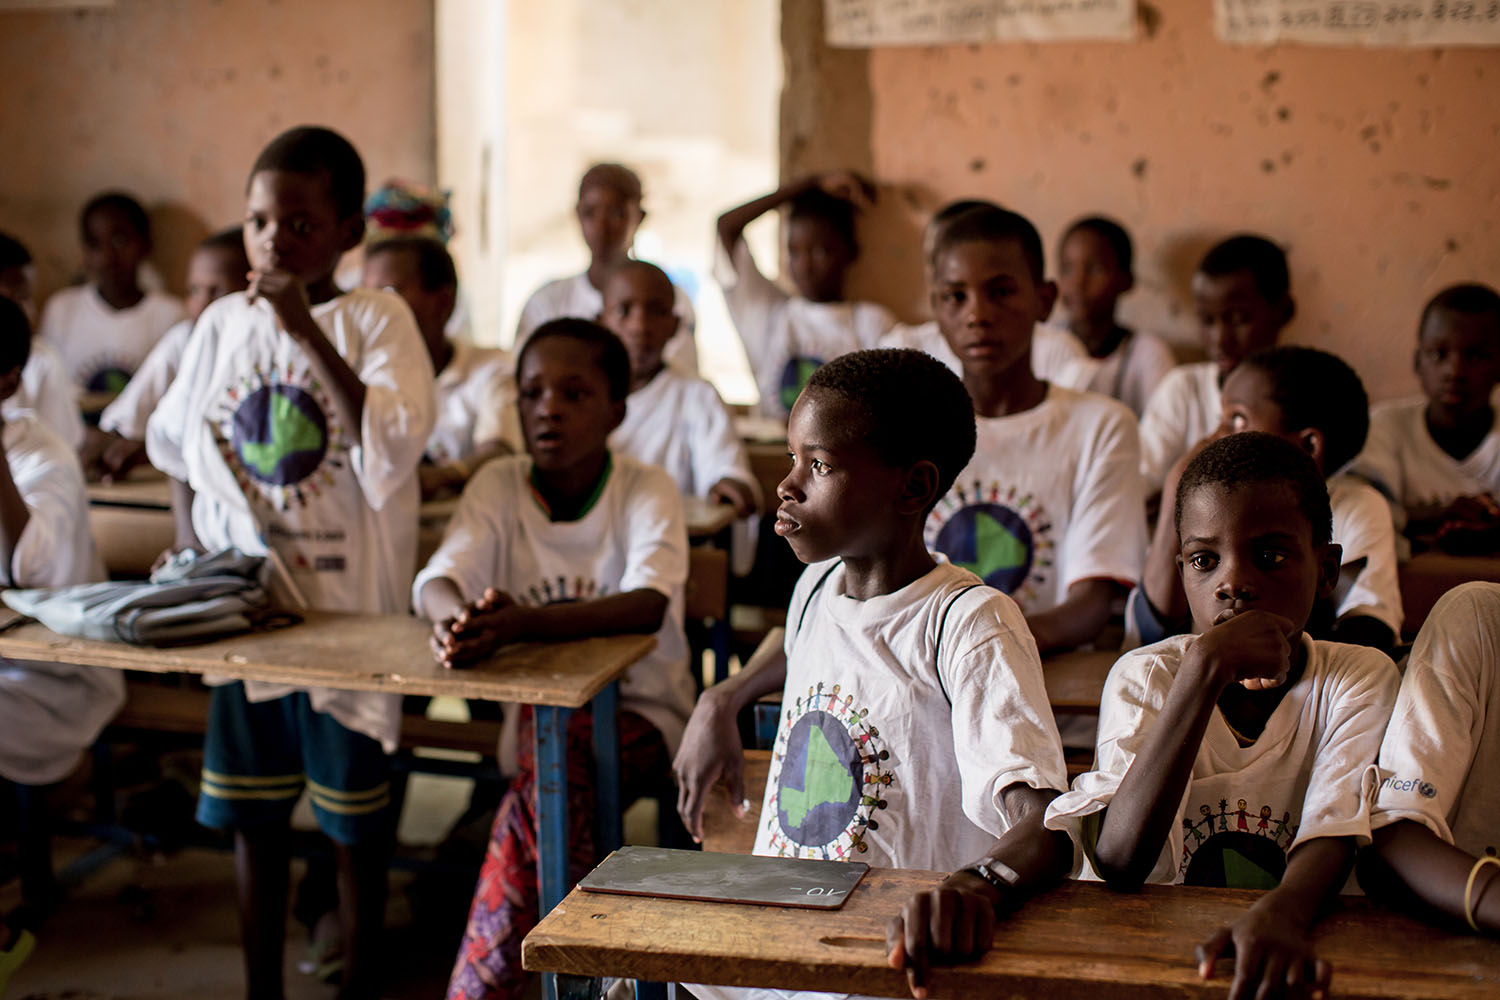 A group of students engage in class at the Accelerated Learning Center of Bourougoundye, Gao where ongoing conflicts in the northern regions of Mali continue to have devastating effects education. UNICEF supports the re-opening of schools and alternative